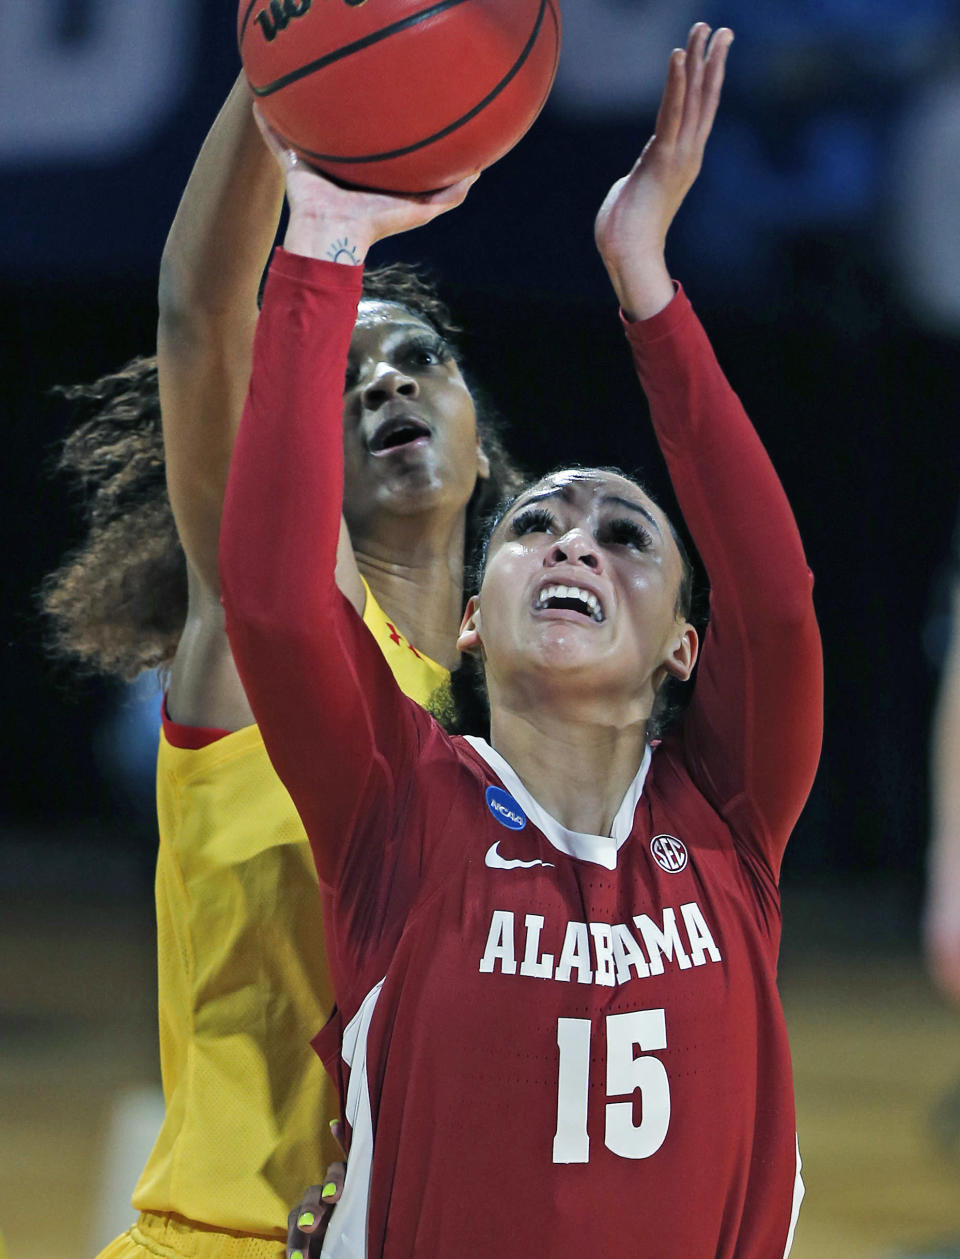 CORRECTS THE DATE TO MARCH 24, NOT MARCH 23 AS ORIGINALLY SENT - Maryland forward Angel Reese, rear, blocks a shot attempt by Alabama's Myra Gordon (15) during the first half of a college basketball game in the second round of the women's NCAA tournament at the Greehey Arena in San Antonio on Wednesday, March 24, 2021. (AP Photo/Ronald Cortes)